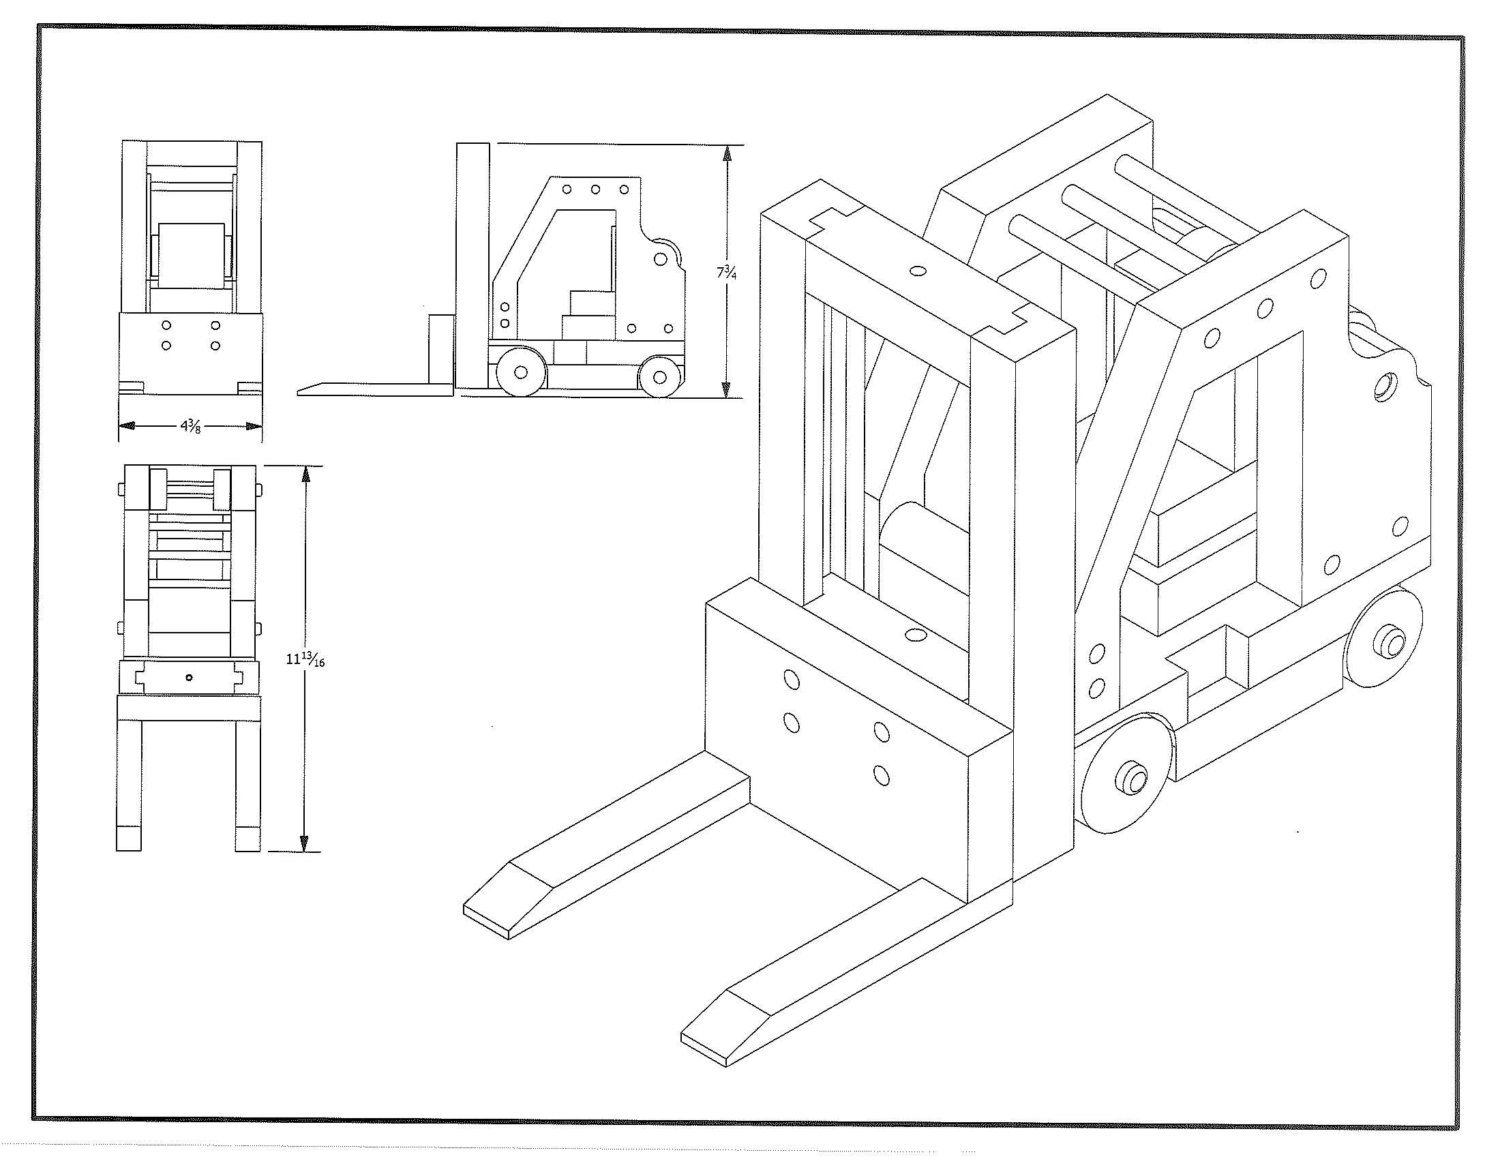 hight resolution of 1500x1159 forklift toy plan from allnaturaltoyplans on etsy studio